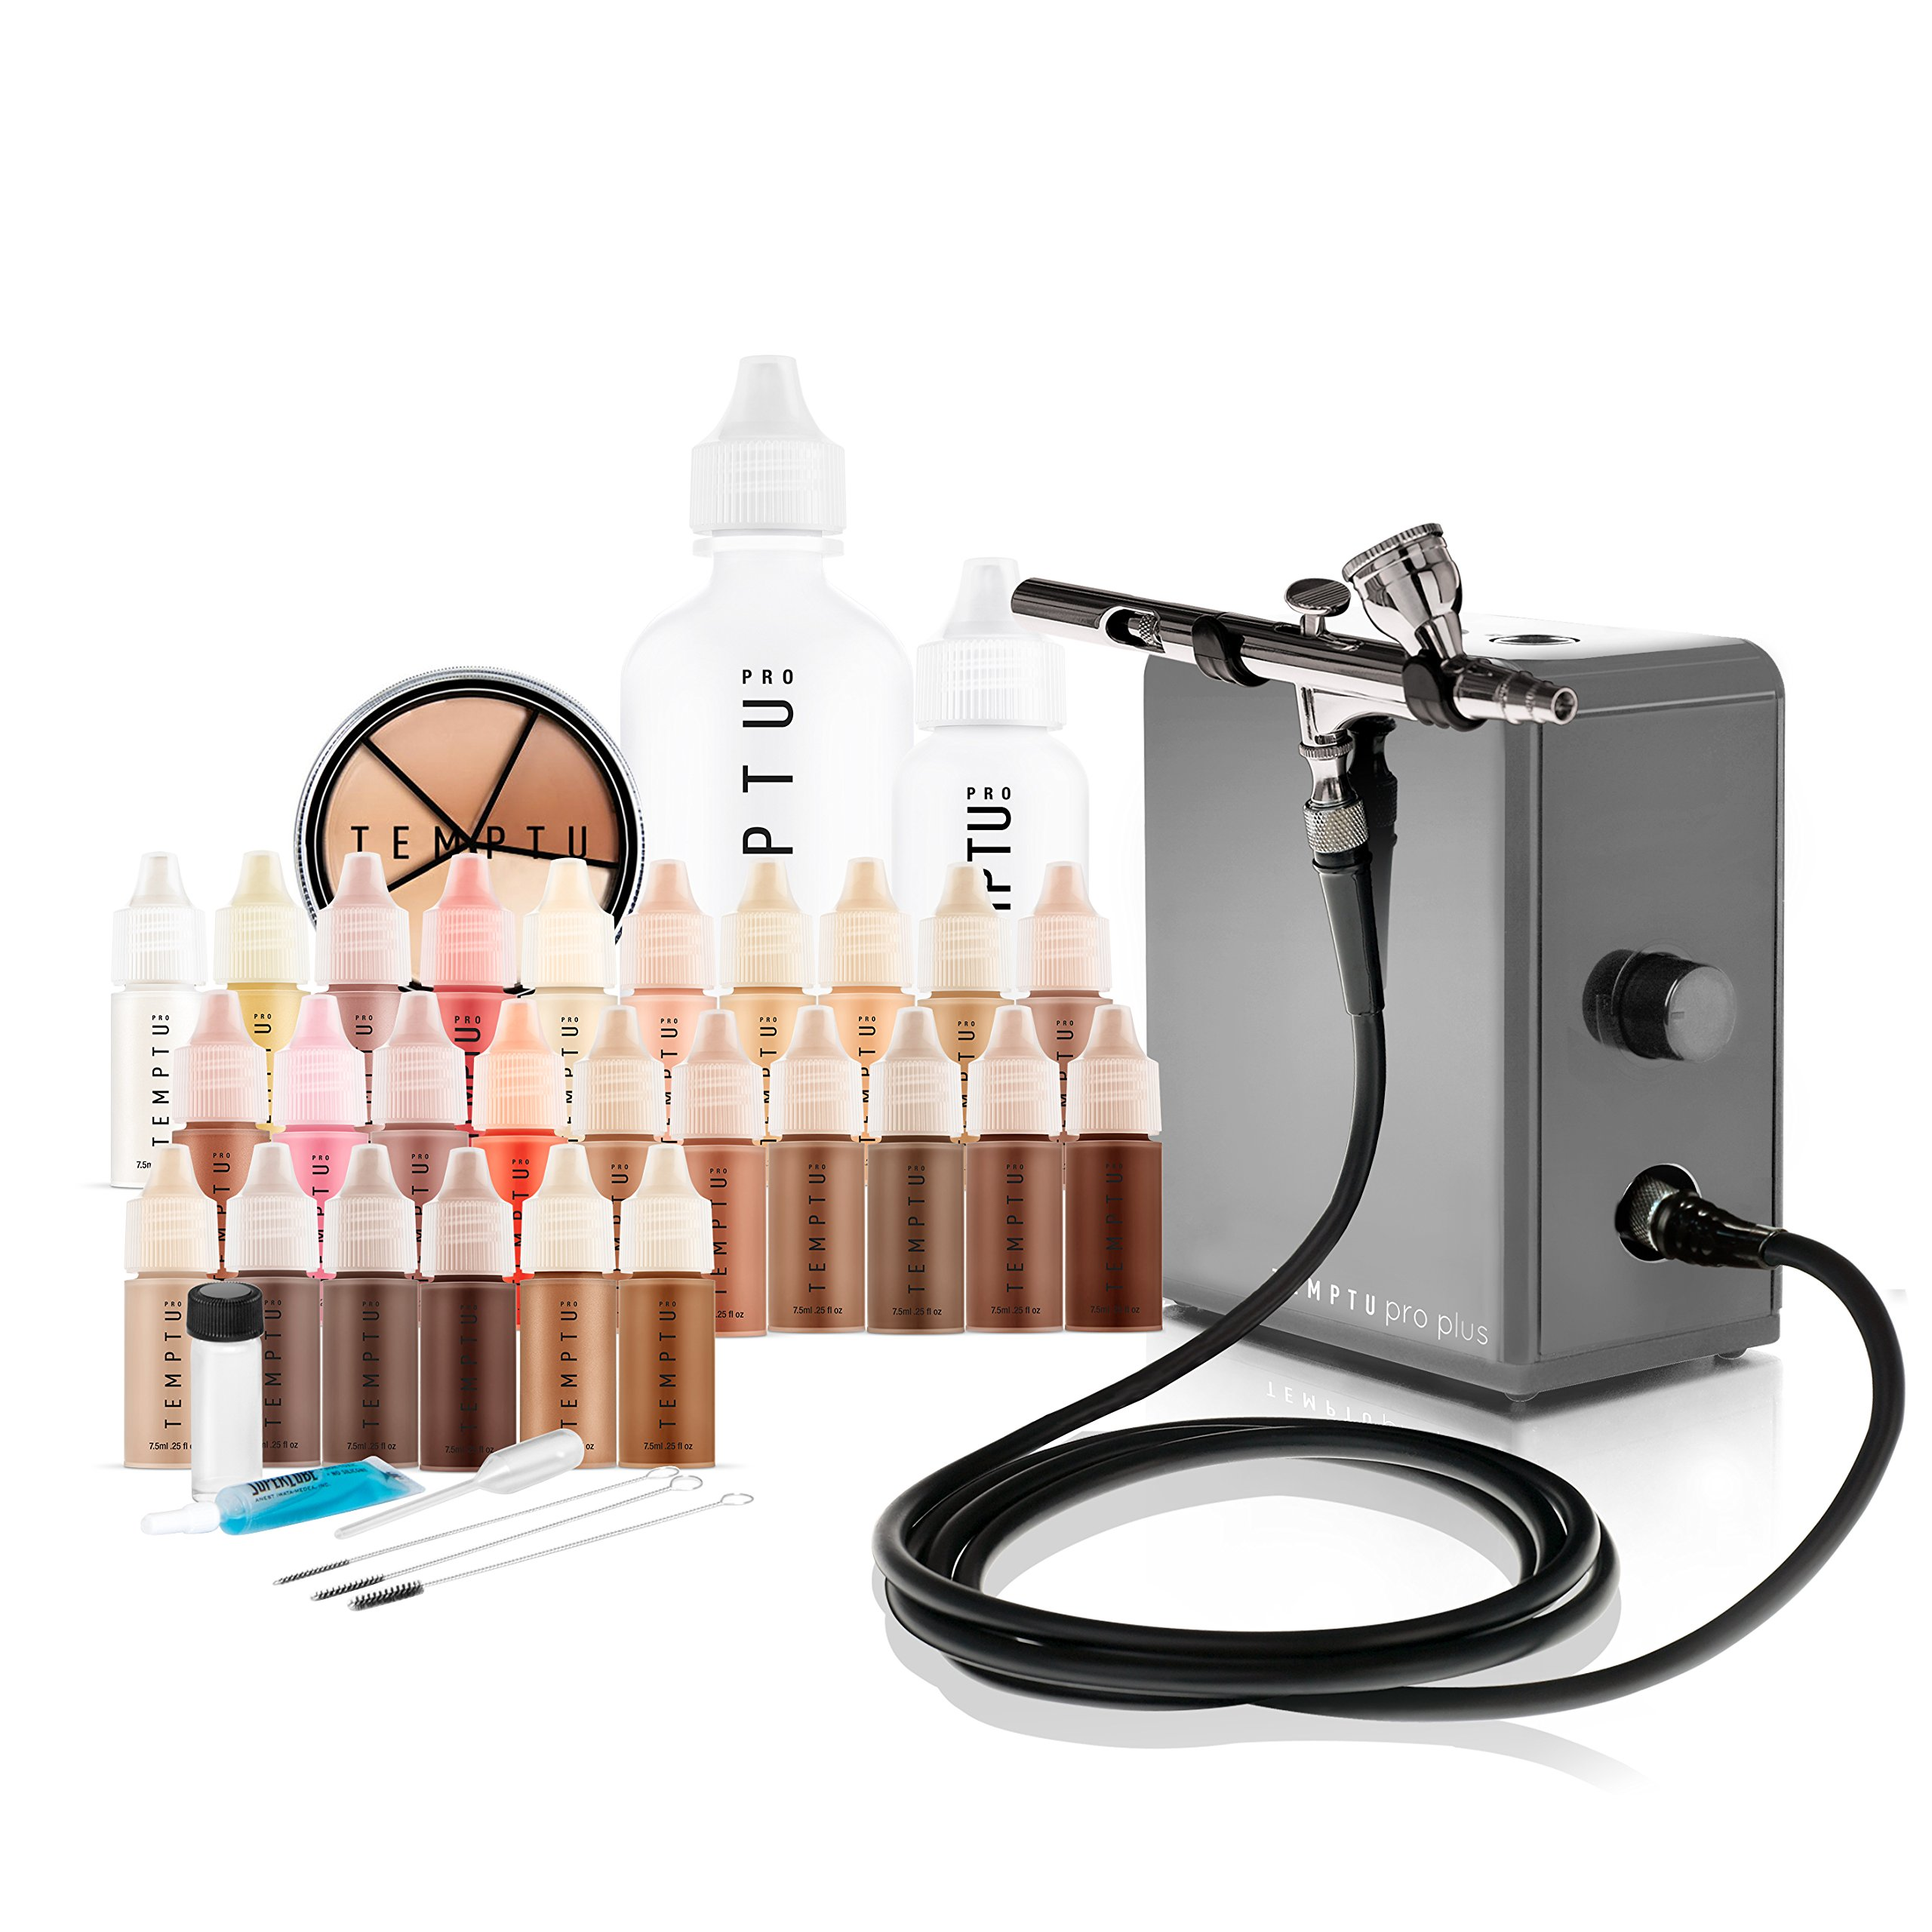 Temptu Pro Plus Deluxe Airbrush Kit: Airbrush Makeup Set for Professionals by Temptu